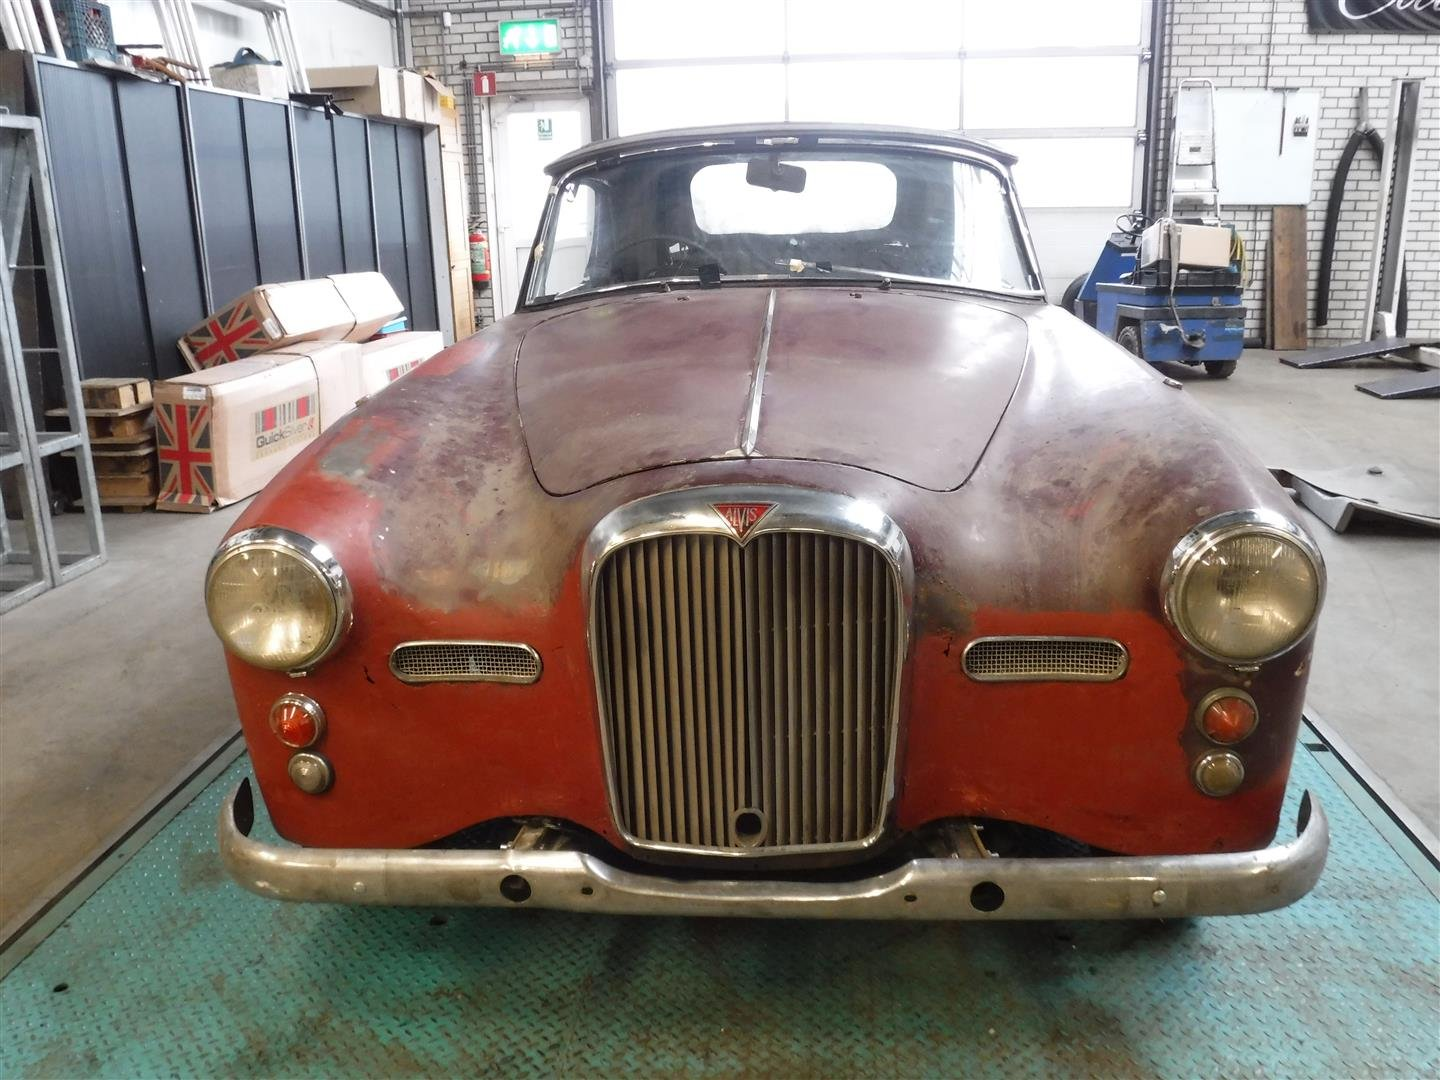 1960 Alvis TD21 convertible for sale For Sale (picture 2 of 6)